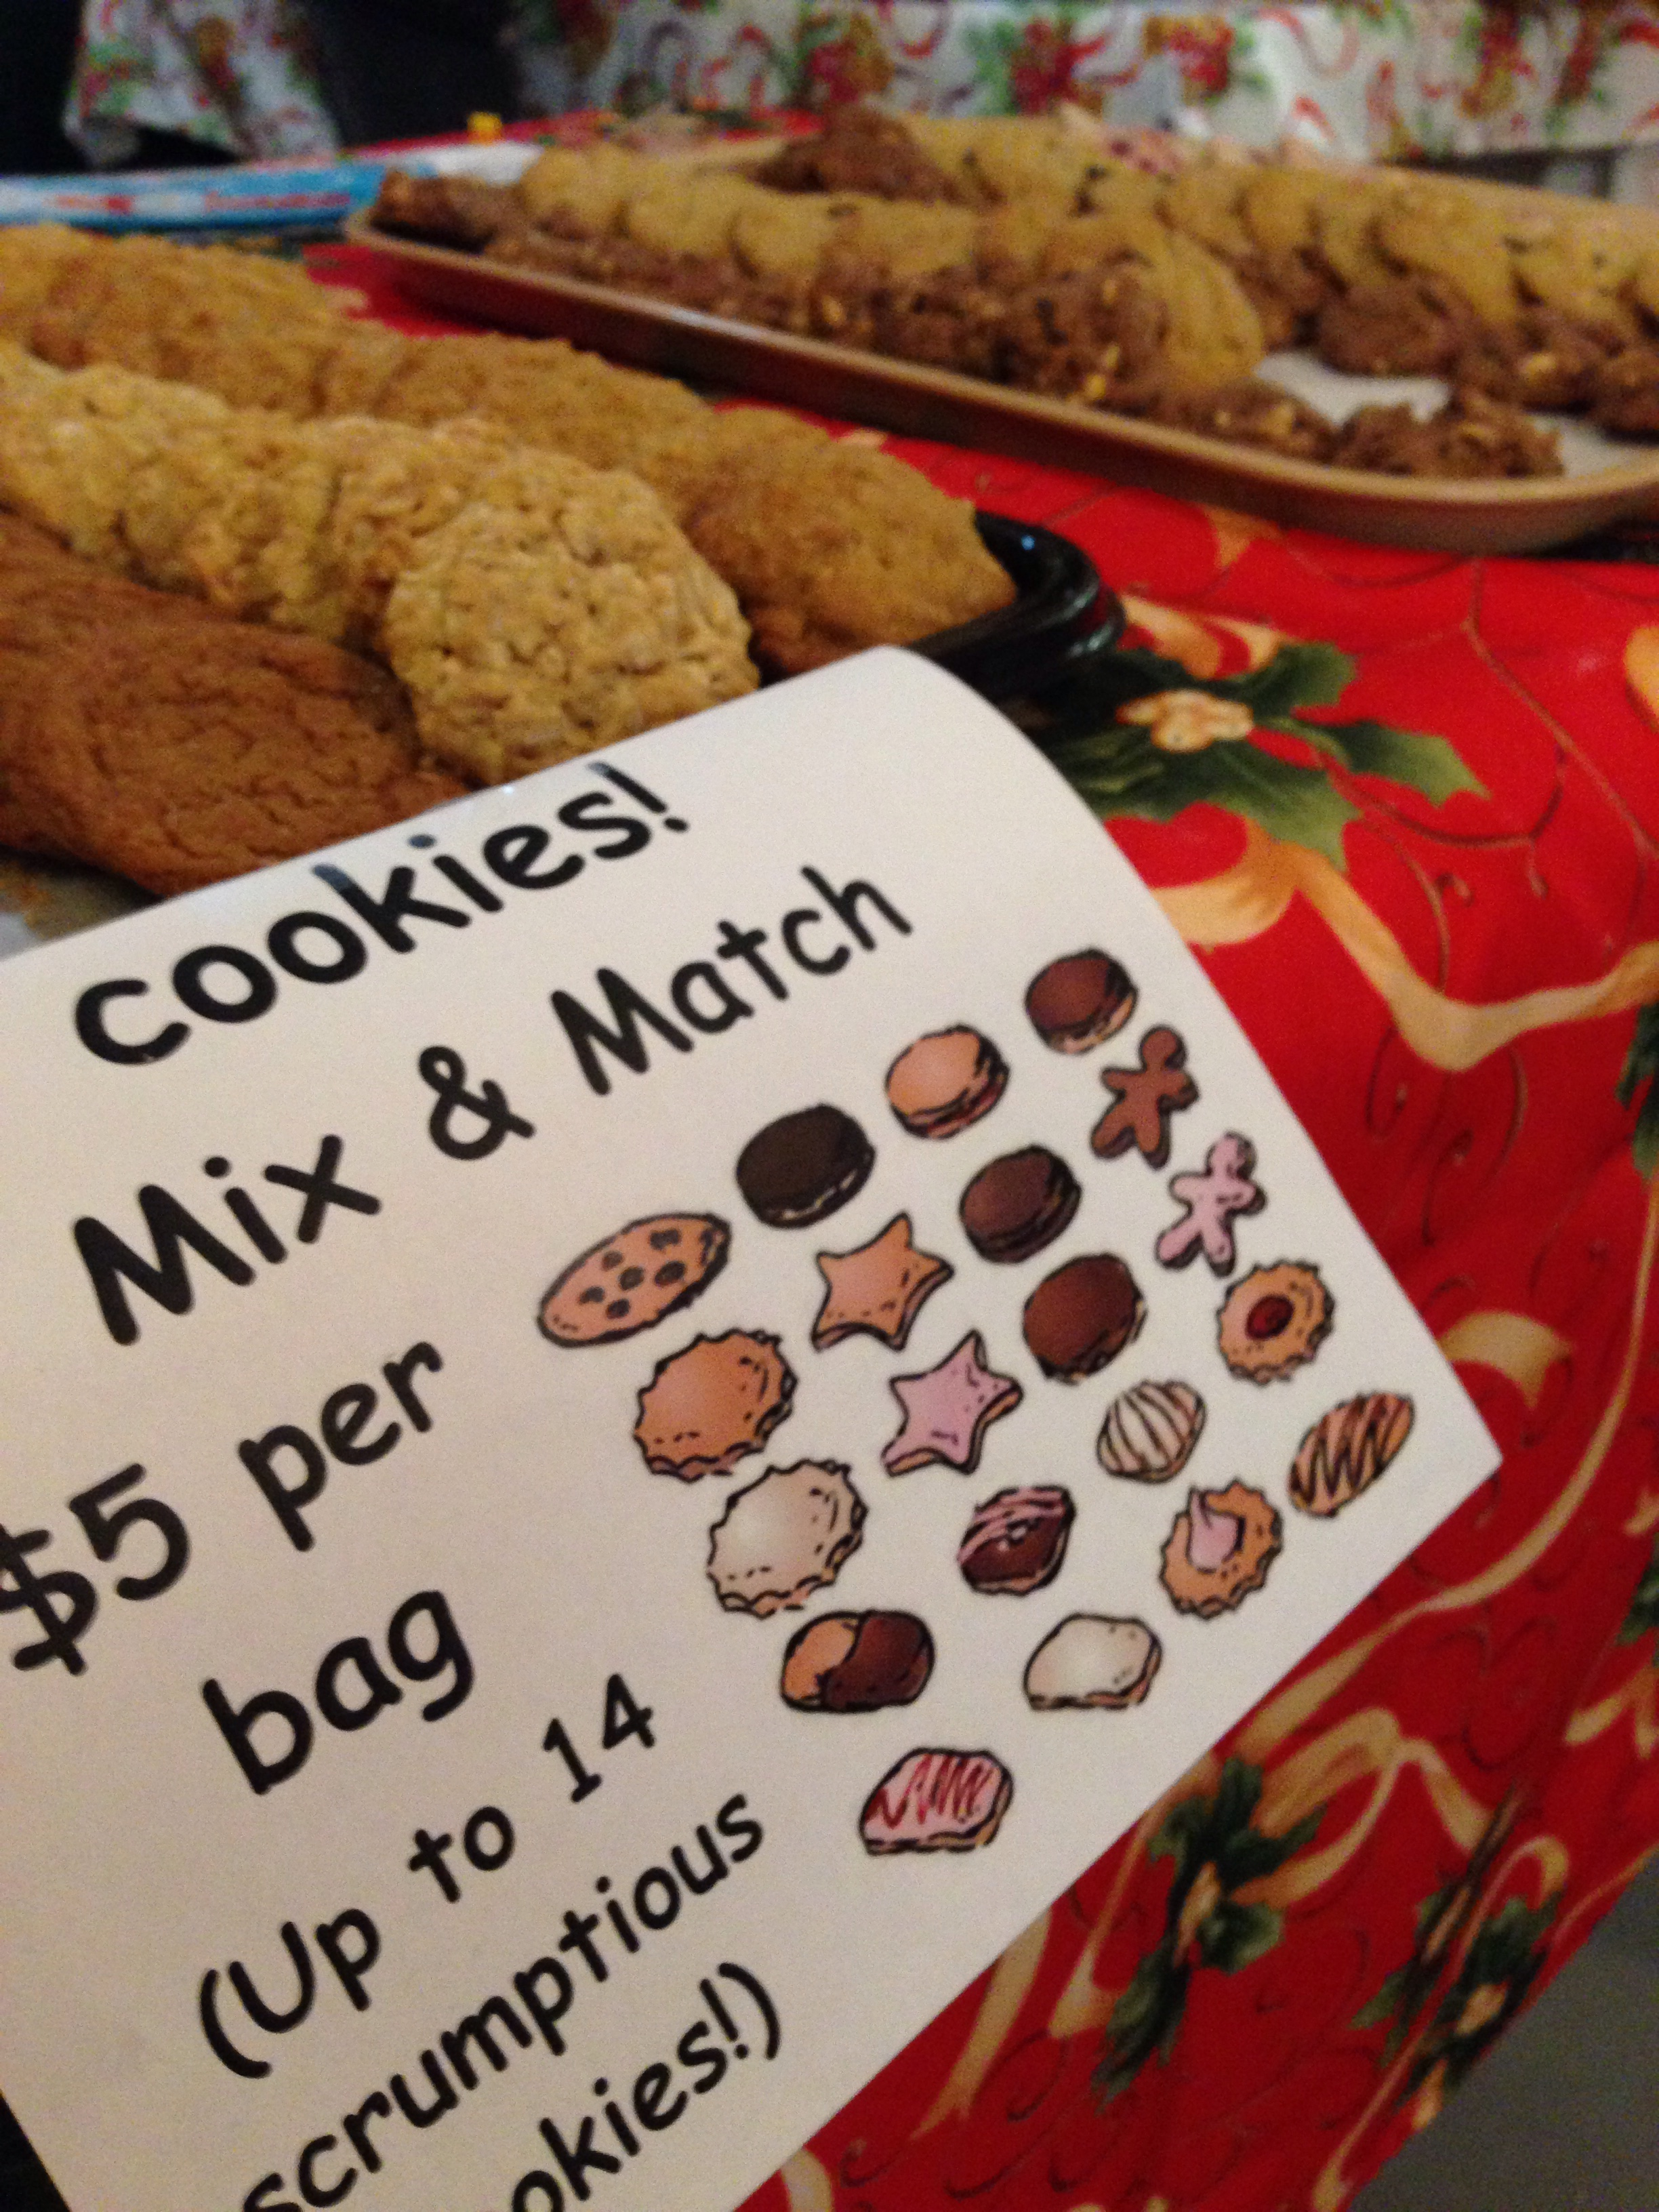 Cookie Mix and Match Bake Sale Table